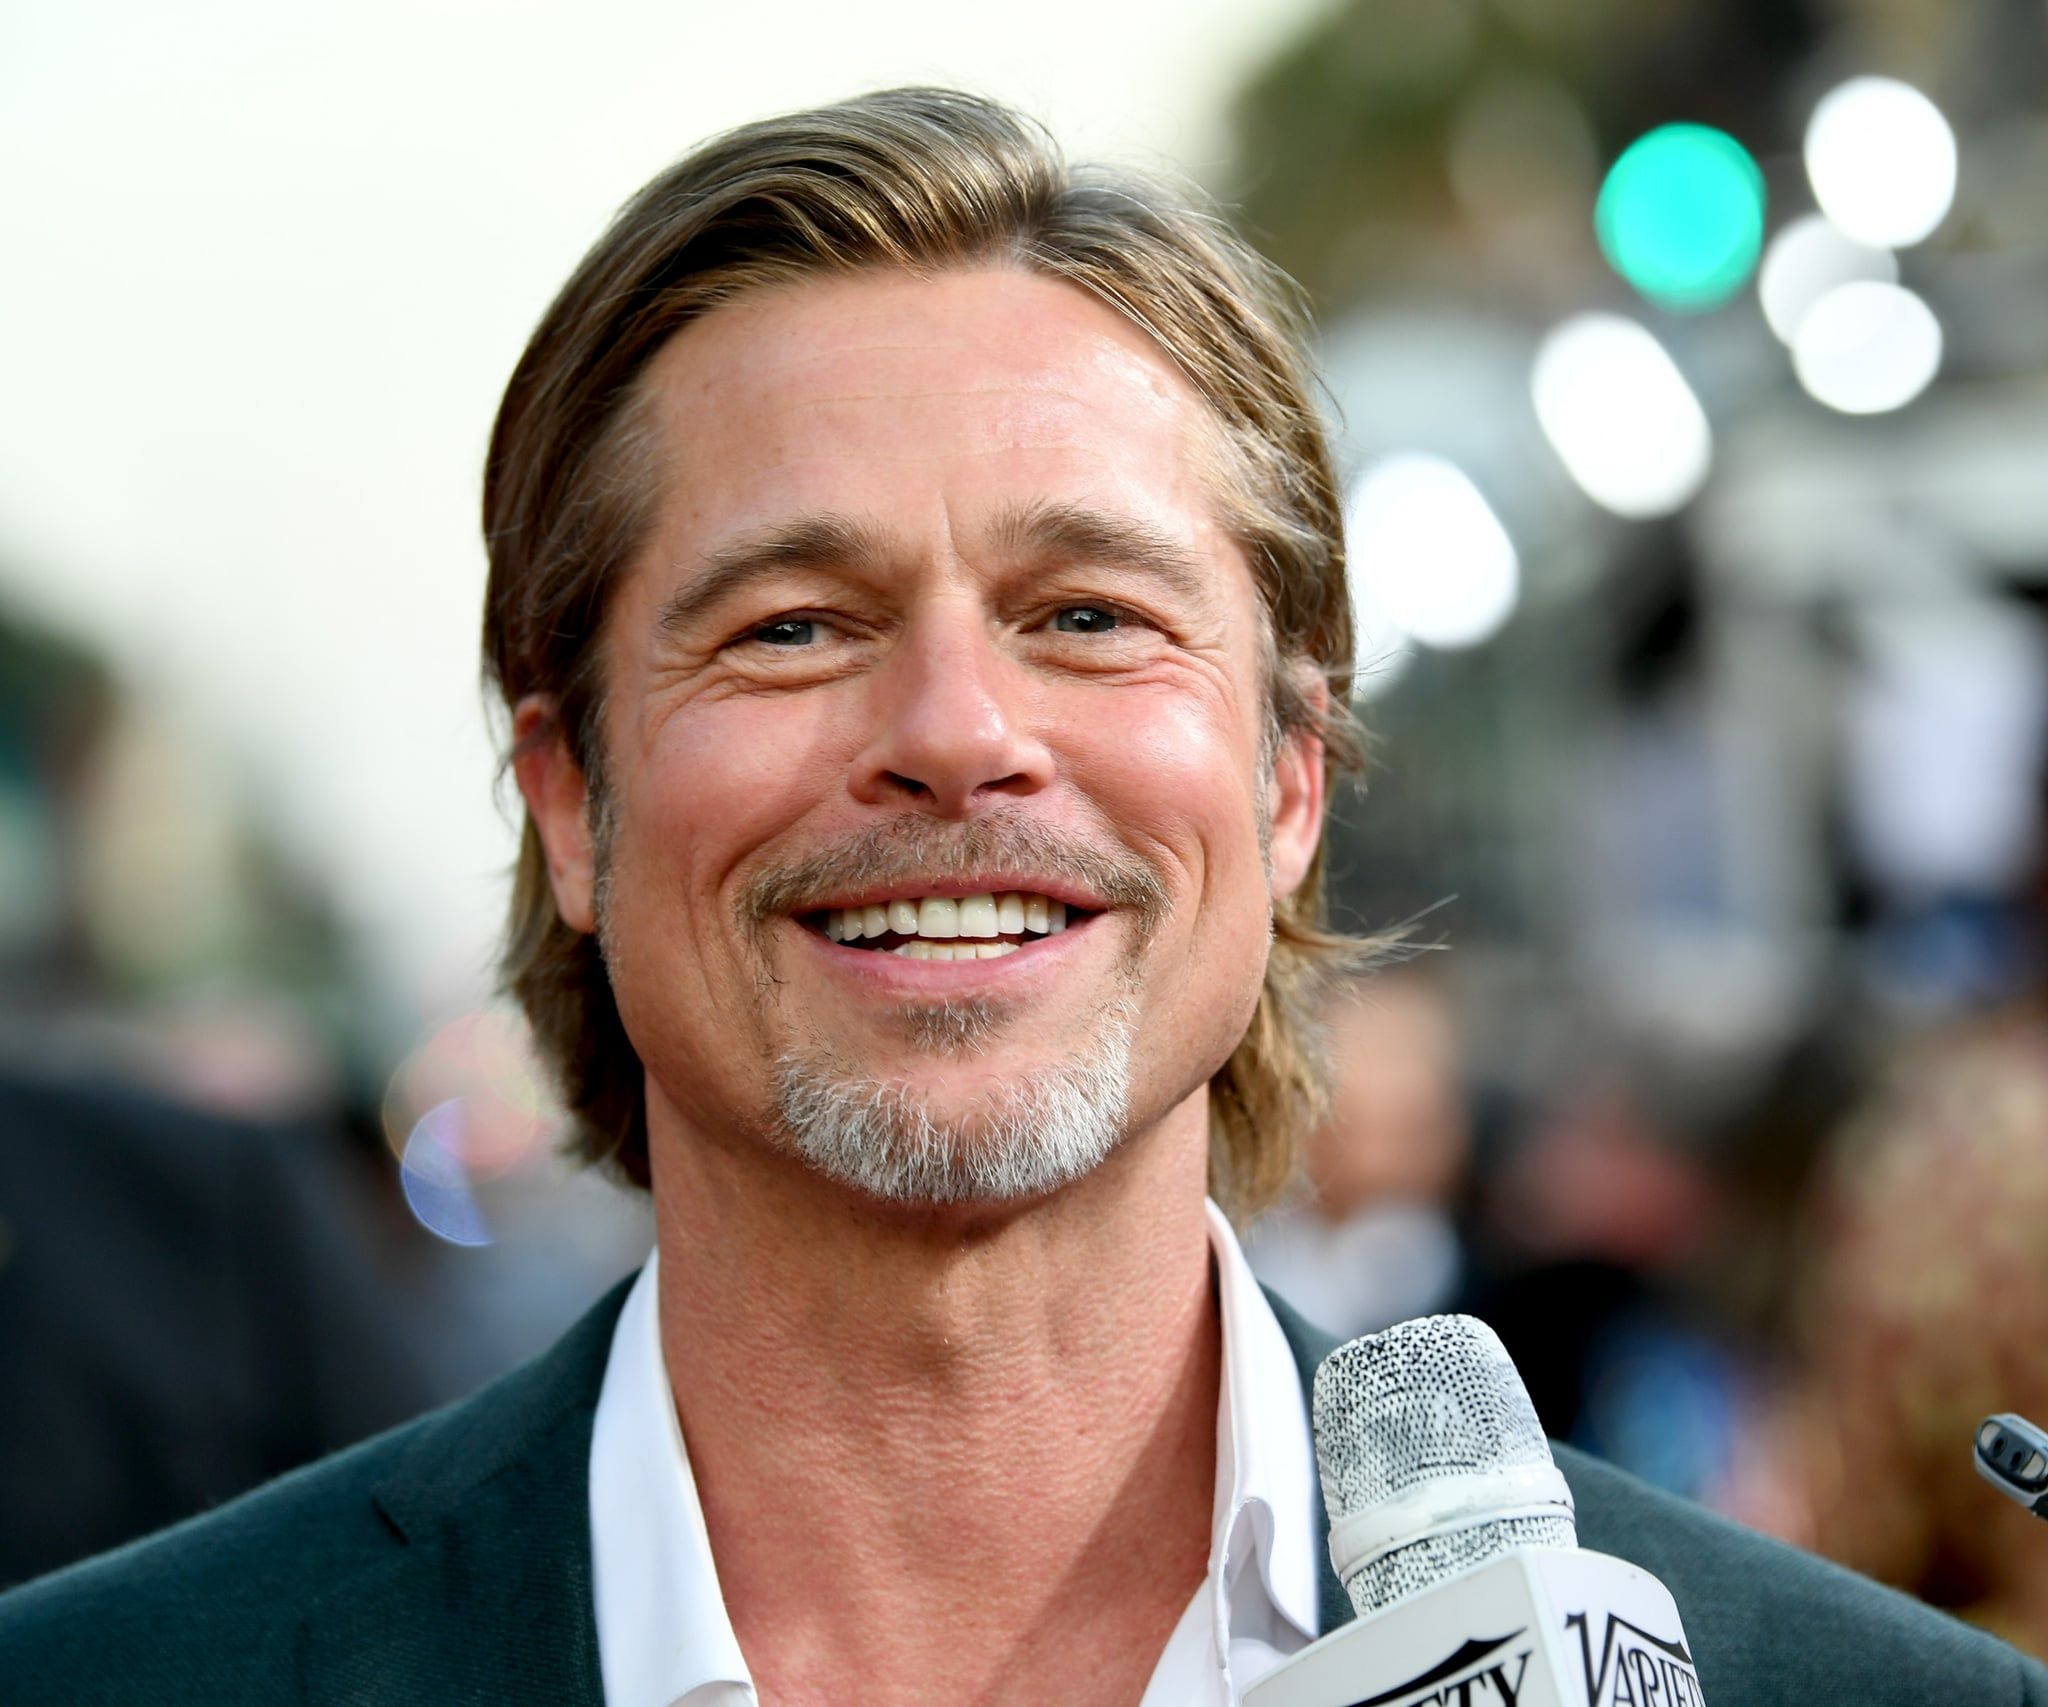 Brad Pitt Is Just Going To Be Gorgeous Forever Huh Brad Pitt Brad Pitt Pictures Celebrity Entertainment